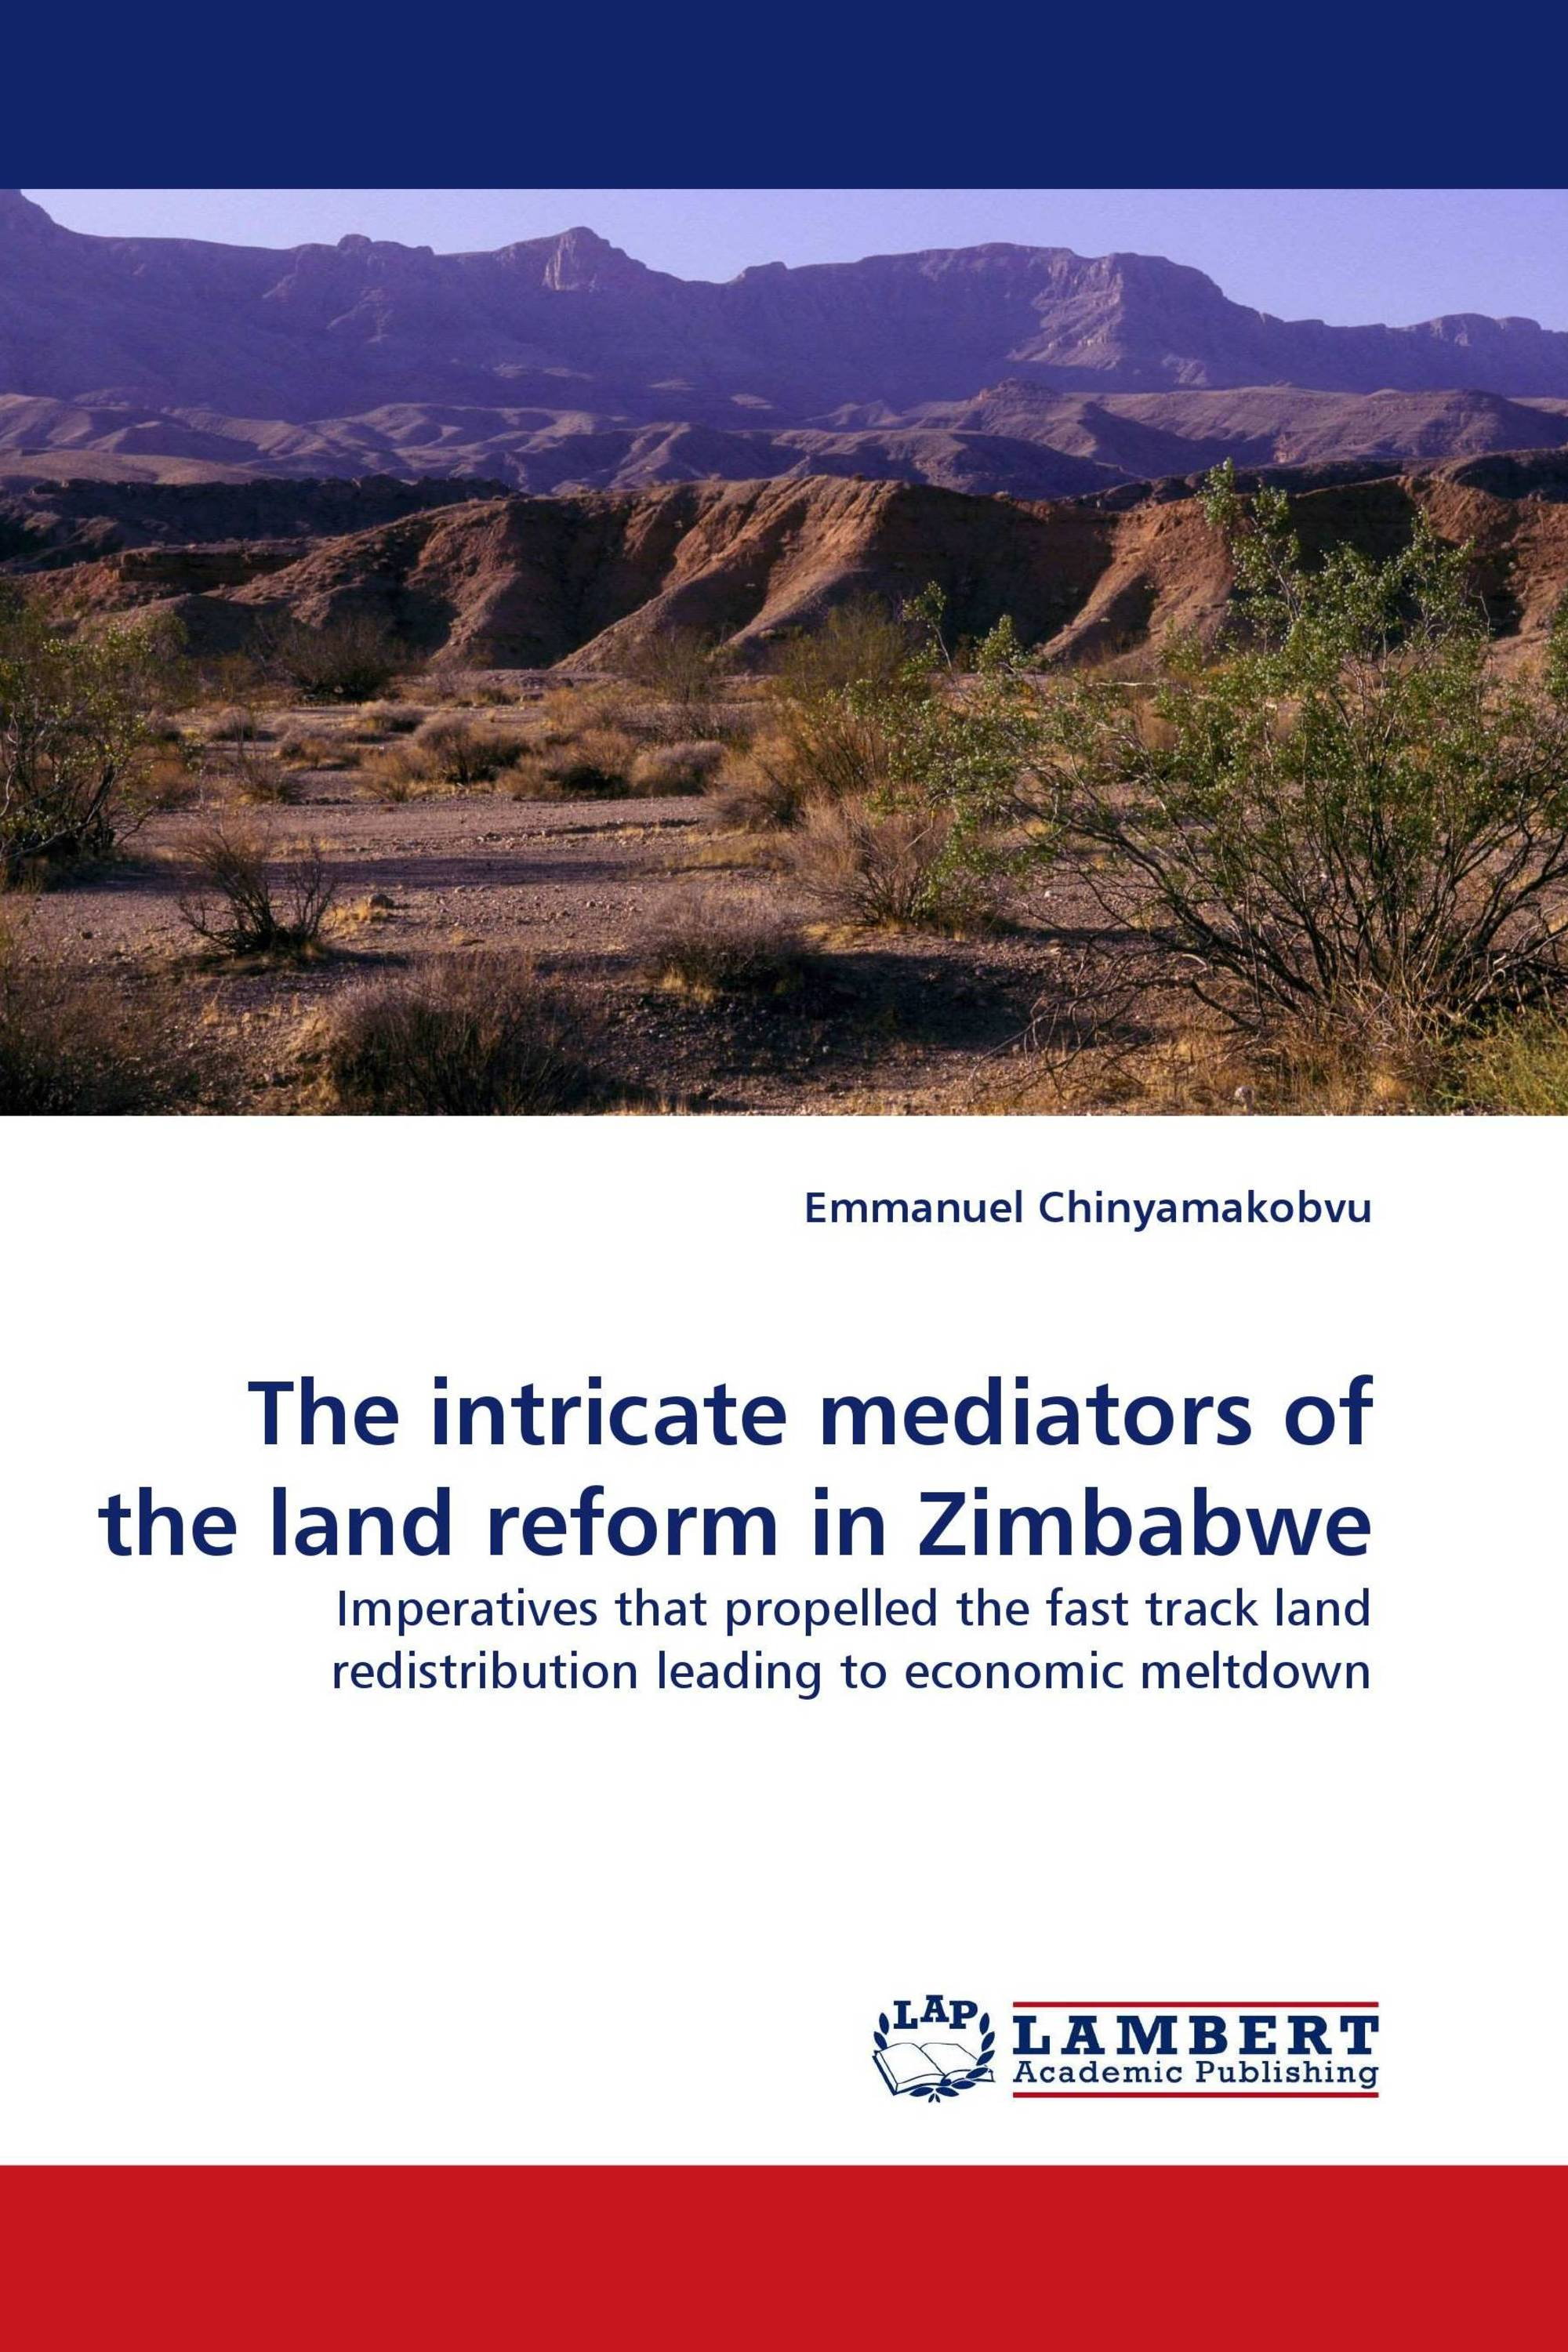 The intricate mediators of the land reform in Zimbabwe